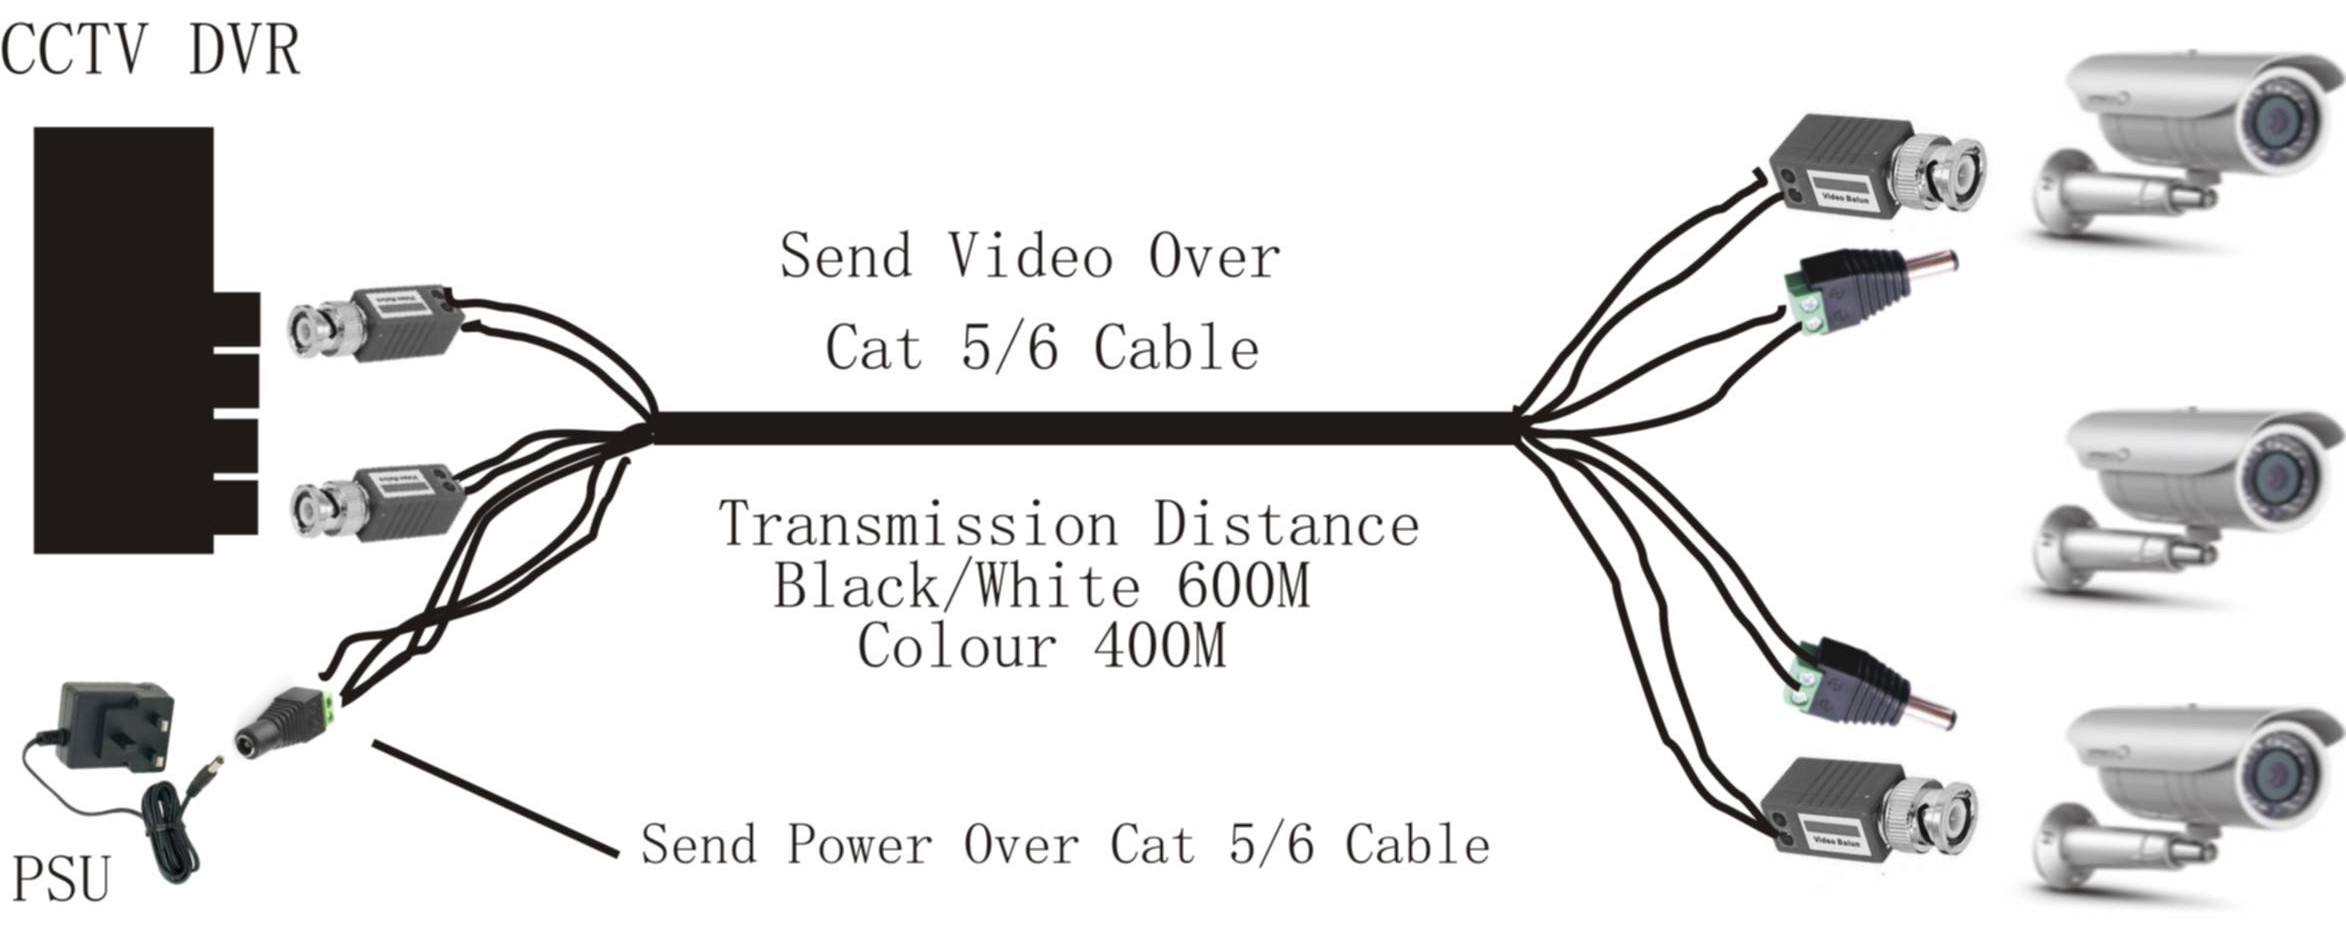 1 channel passive video transceiver for balun bnc cctv